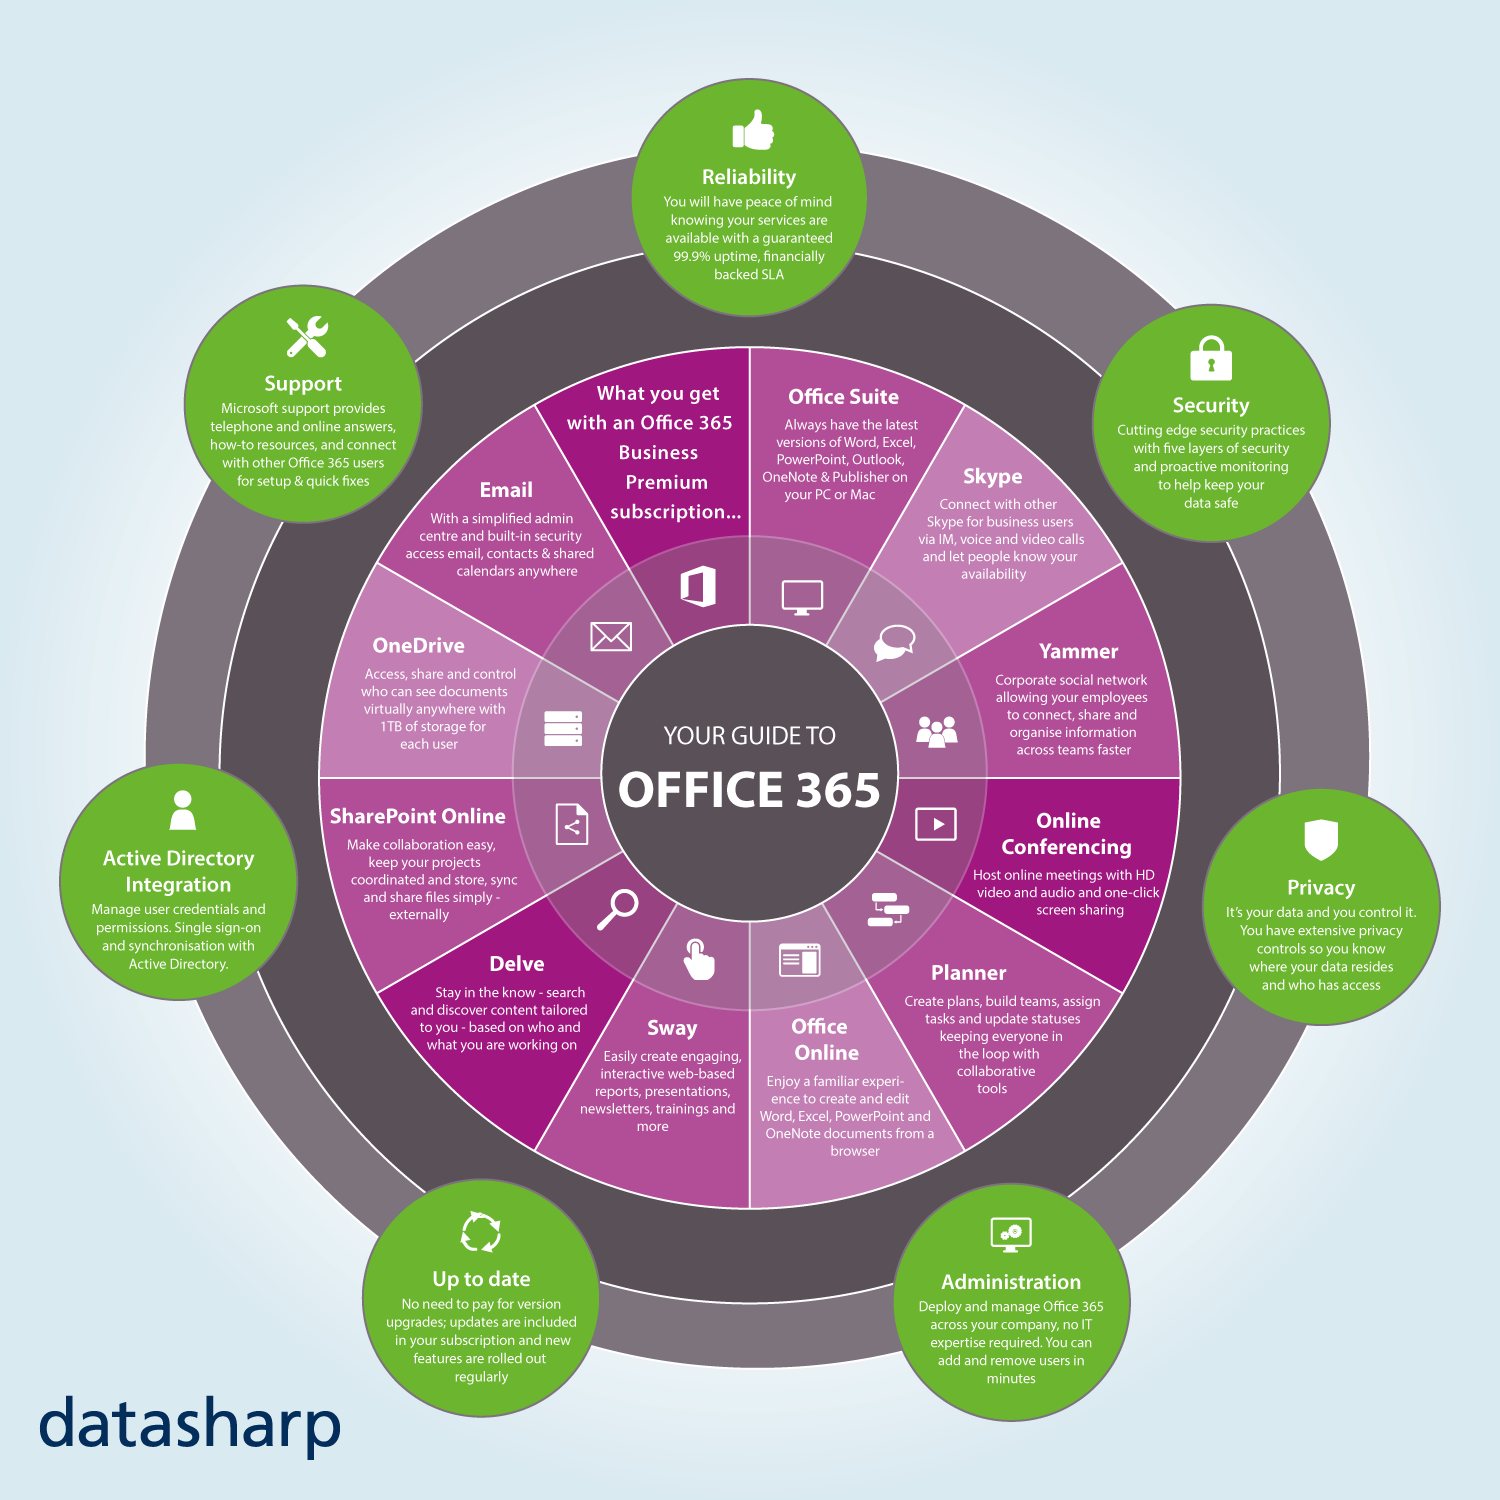 Your guide to Office 365 infographic